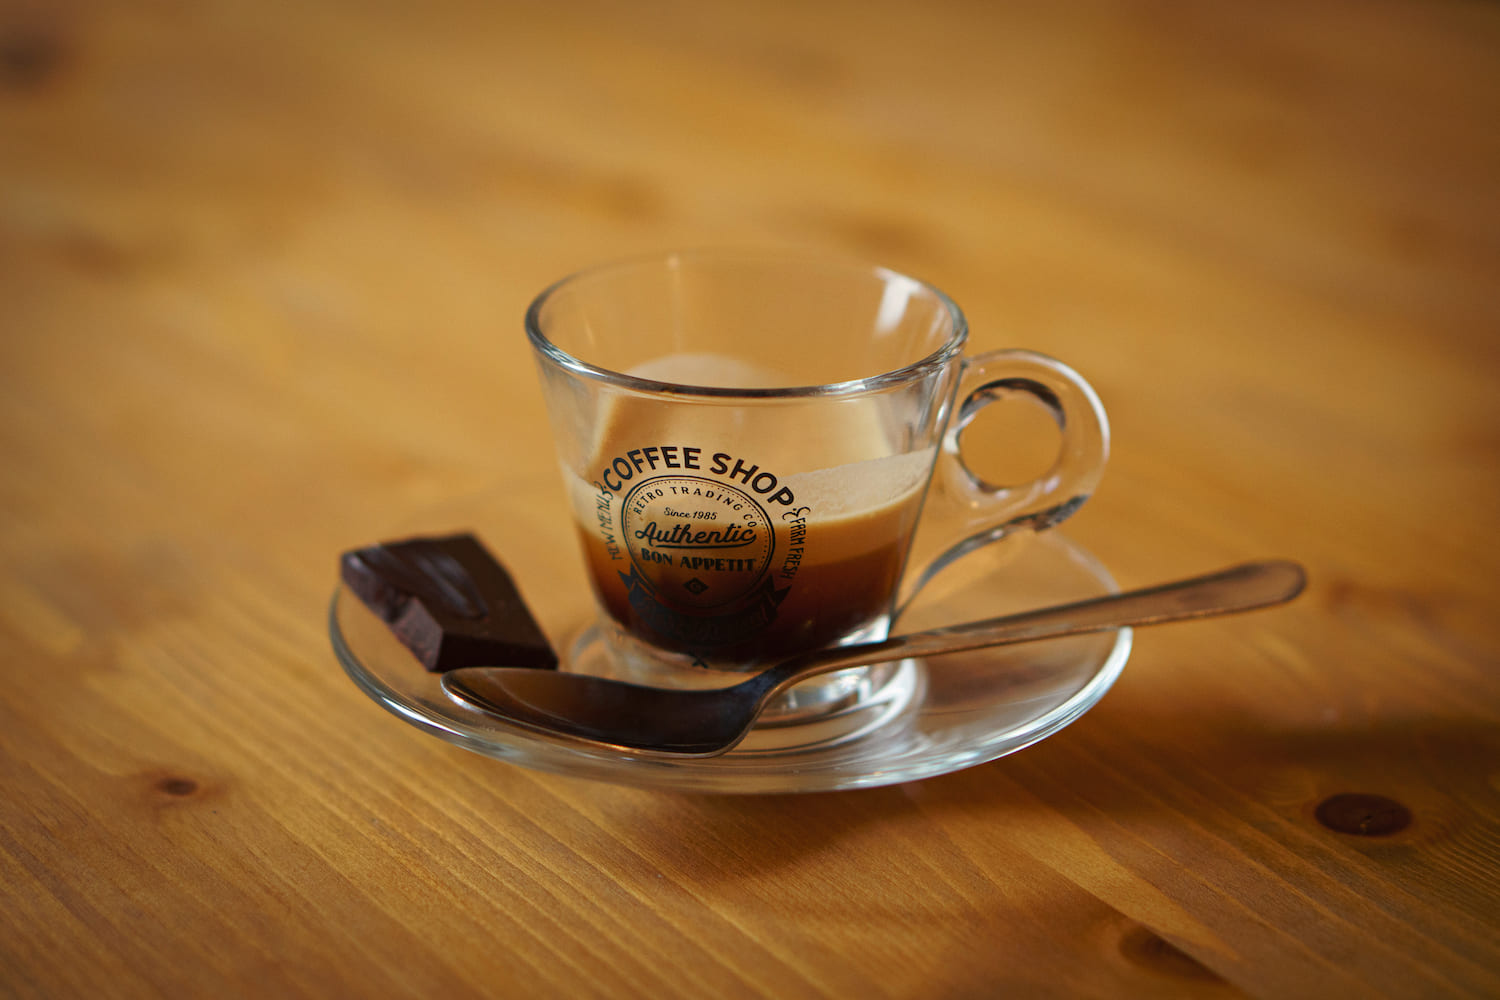 Coffee may protect against prostate cancer